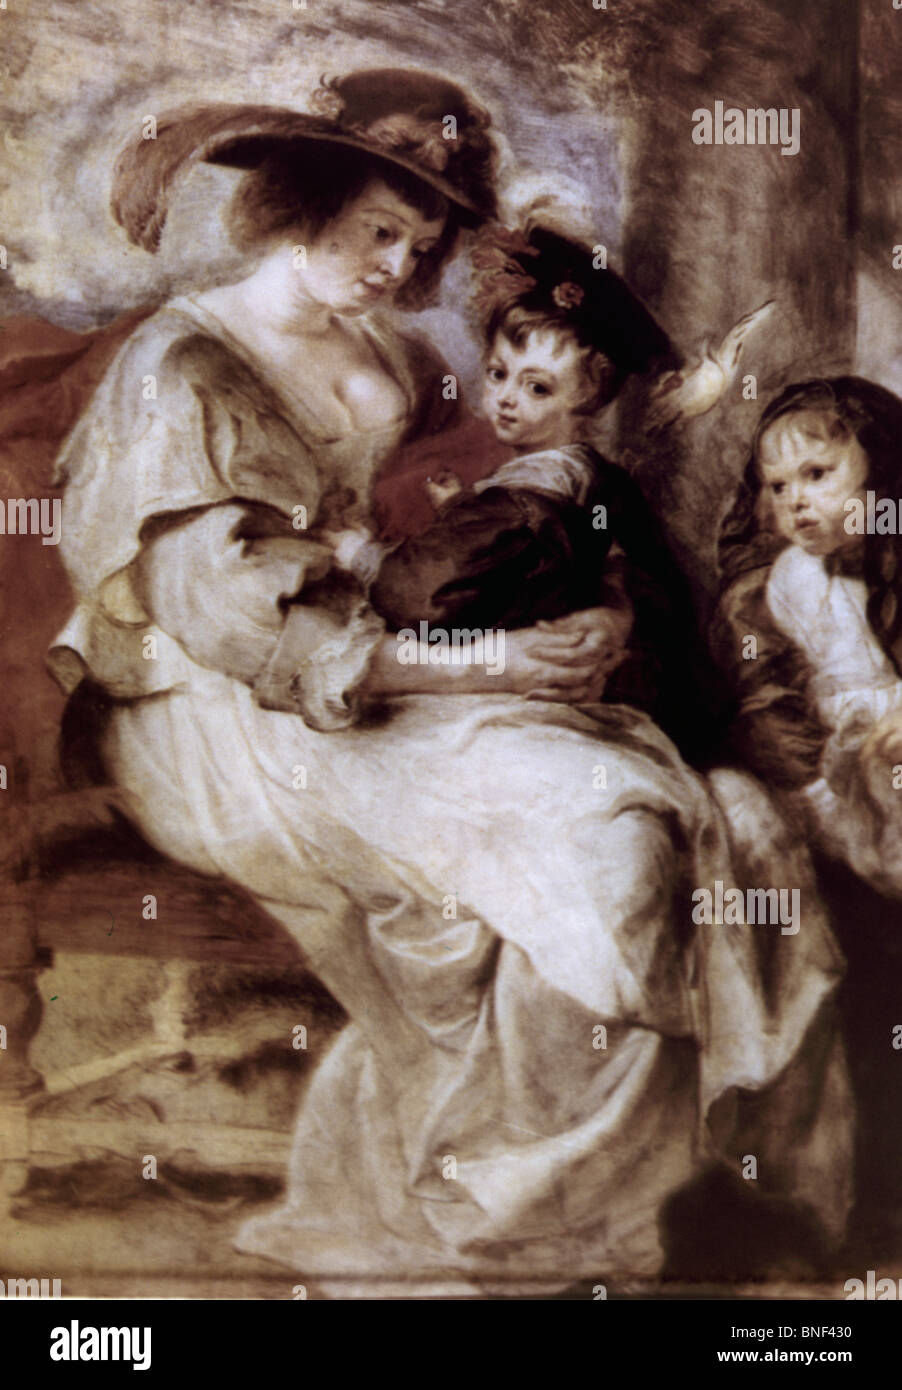 Helene Fourment and Her Children by Peter Paul Rubens, oil on wood, circa 1638, 1577-1640, France, Paris, Musee - Stock Image